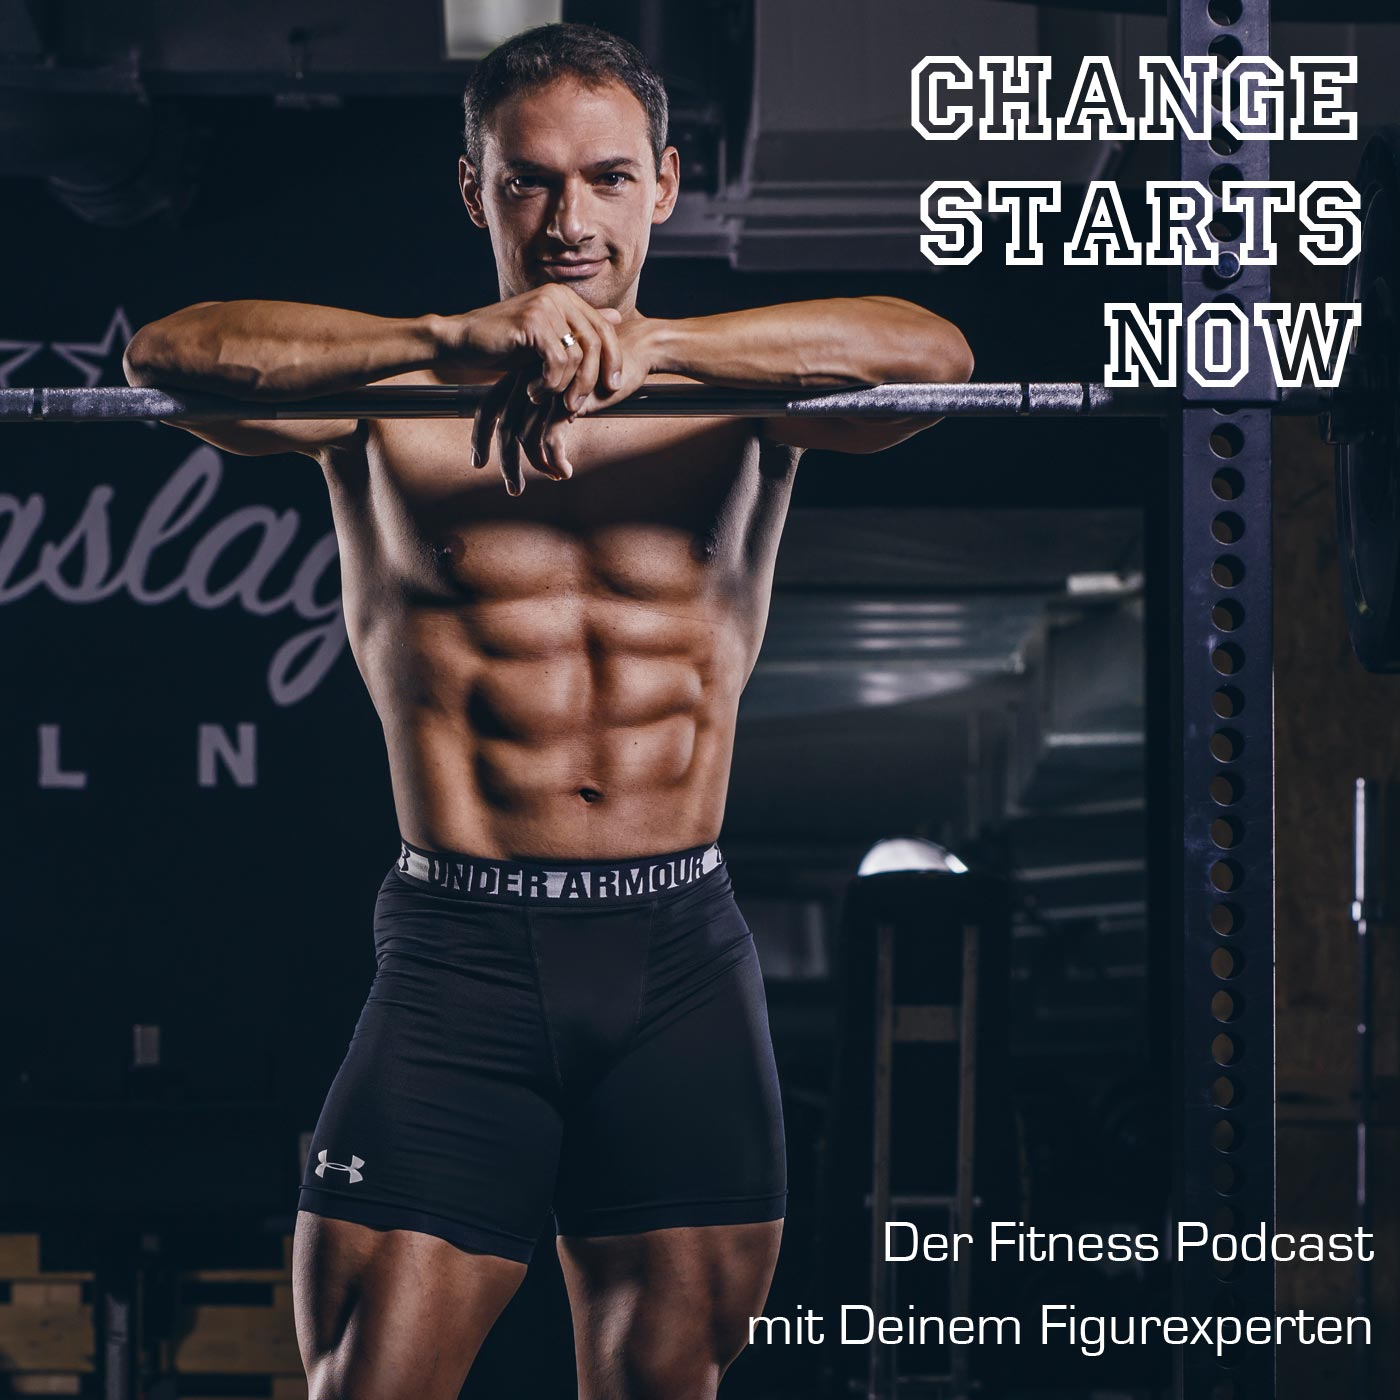 Der Fitness Podcast mit dem Figurexperten